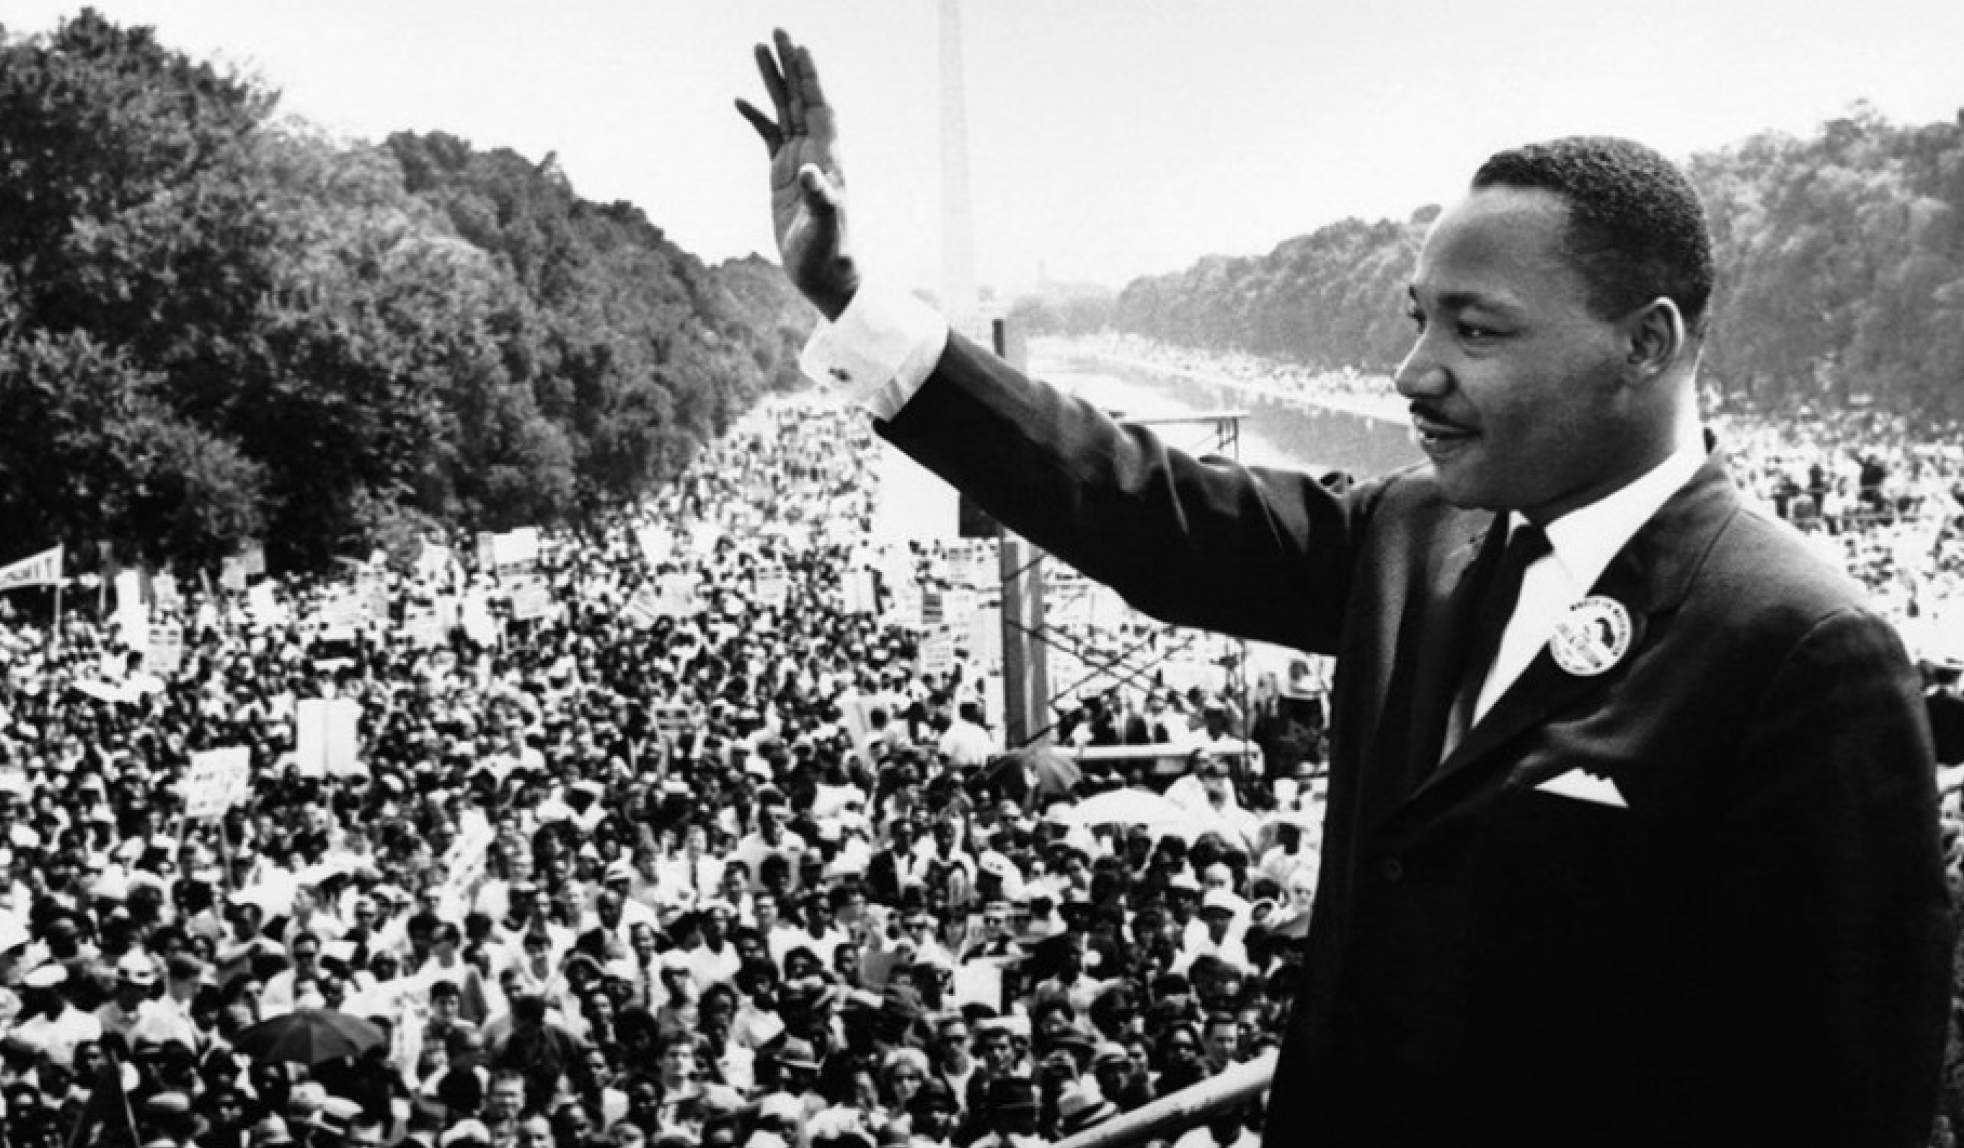 Join us for special events and enjoy great books and movies about Dr. King.